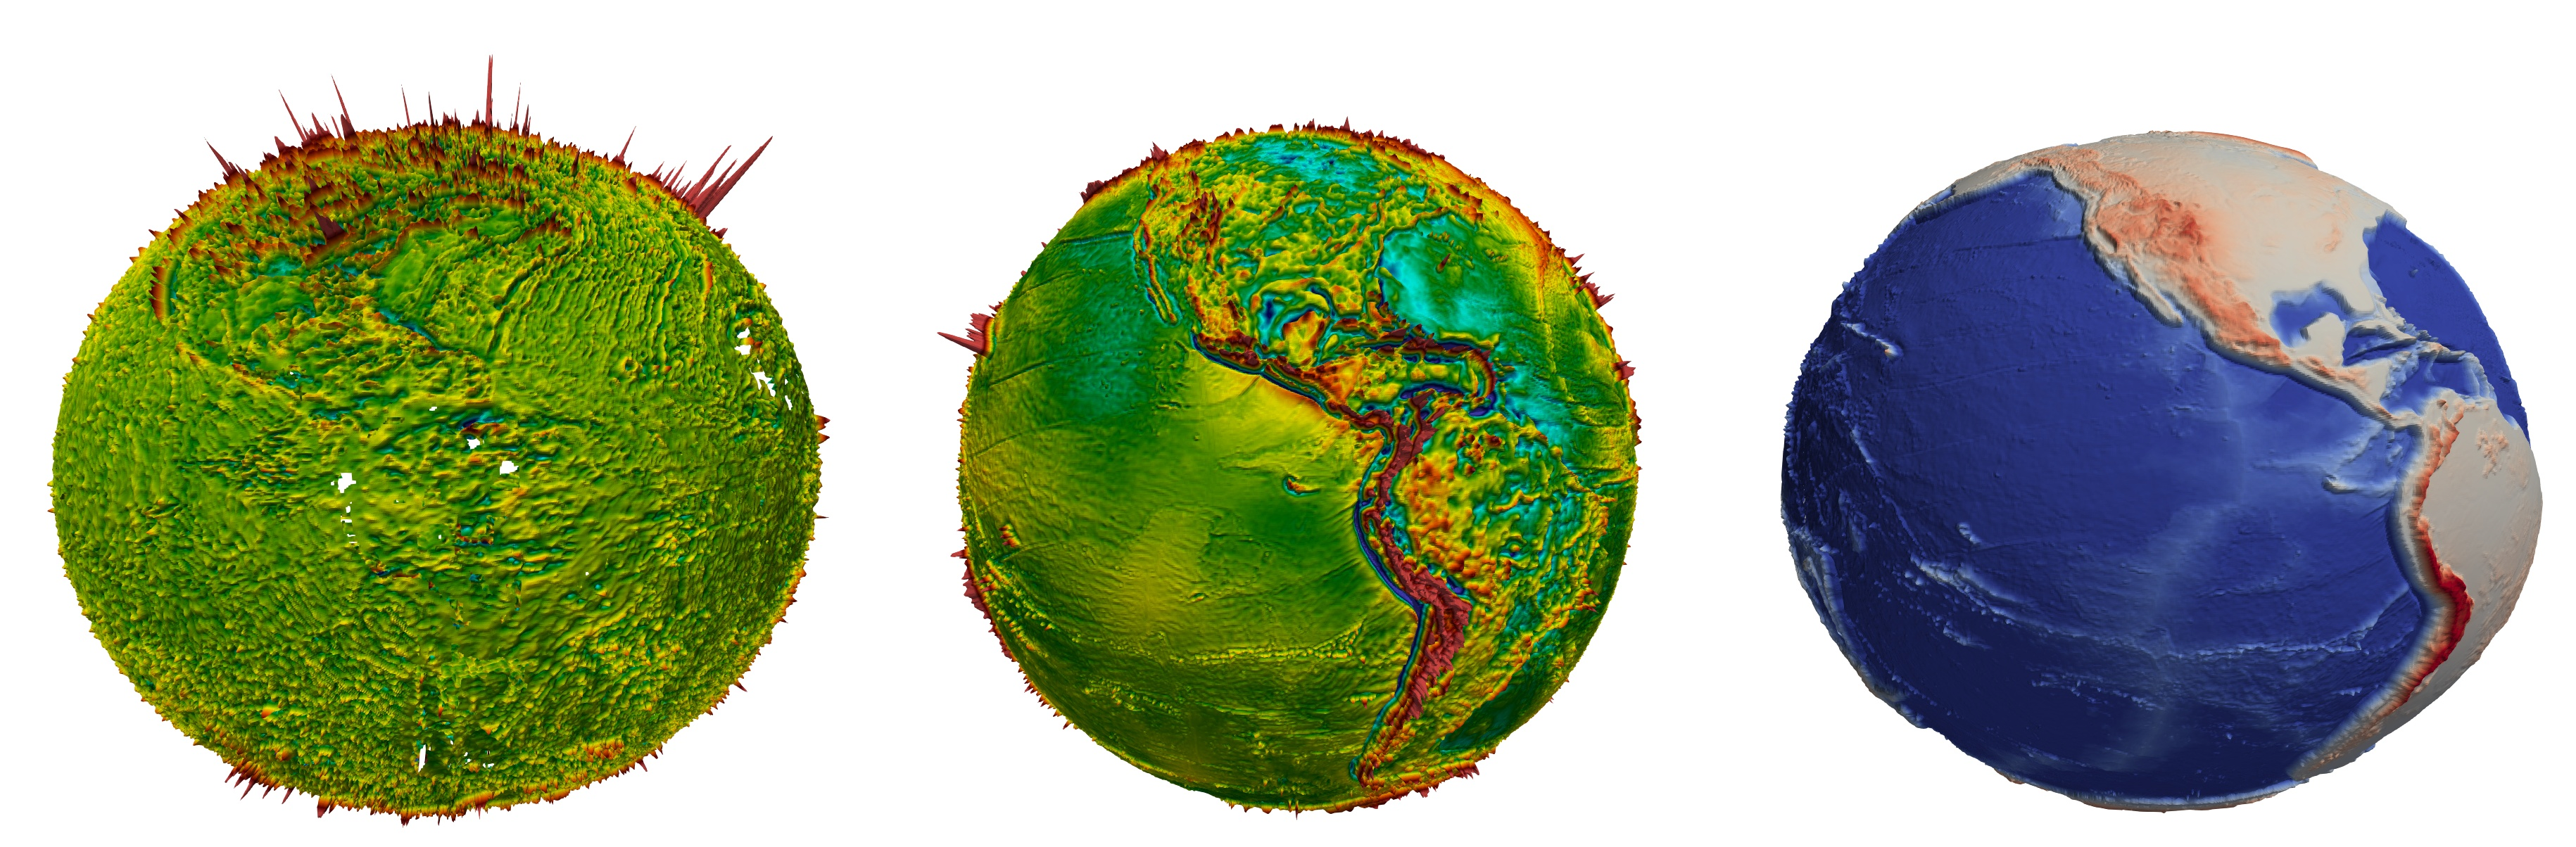 Earth Observation Data on the Globe